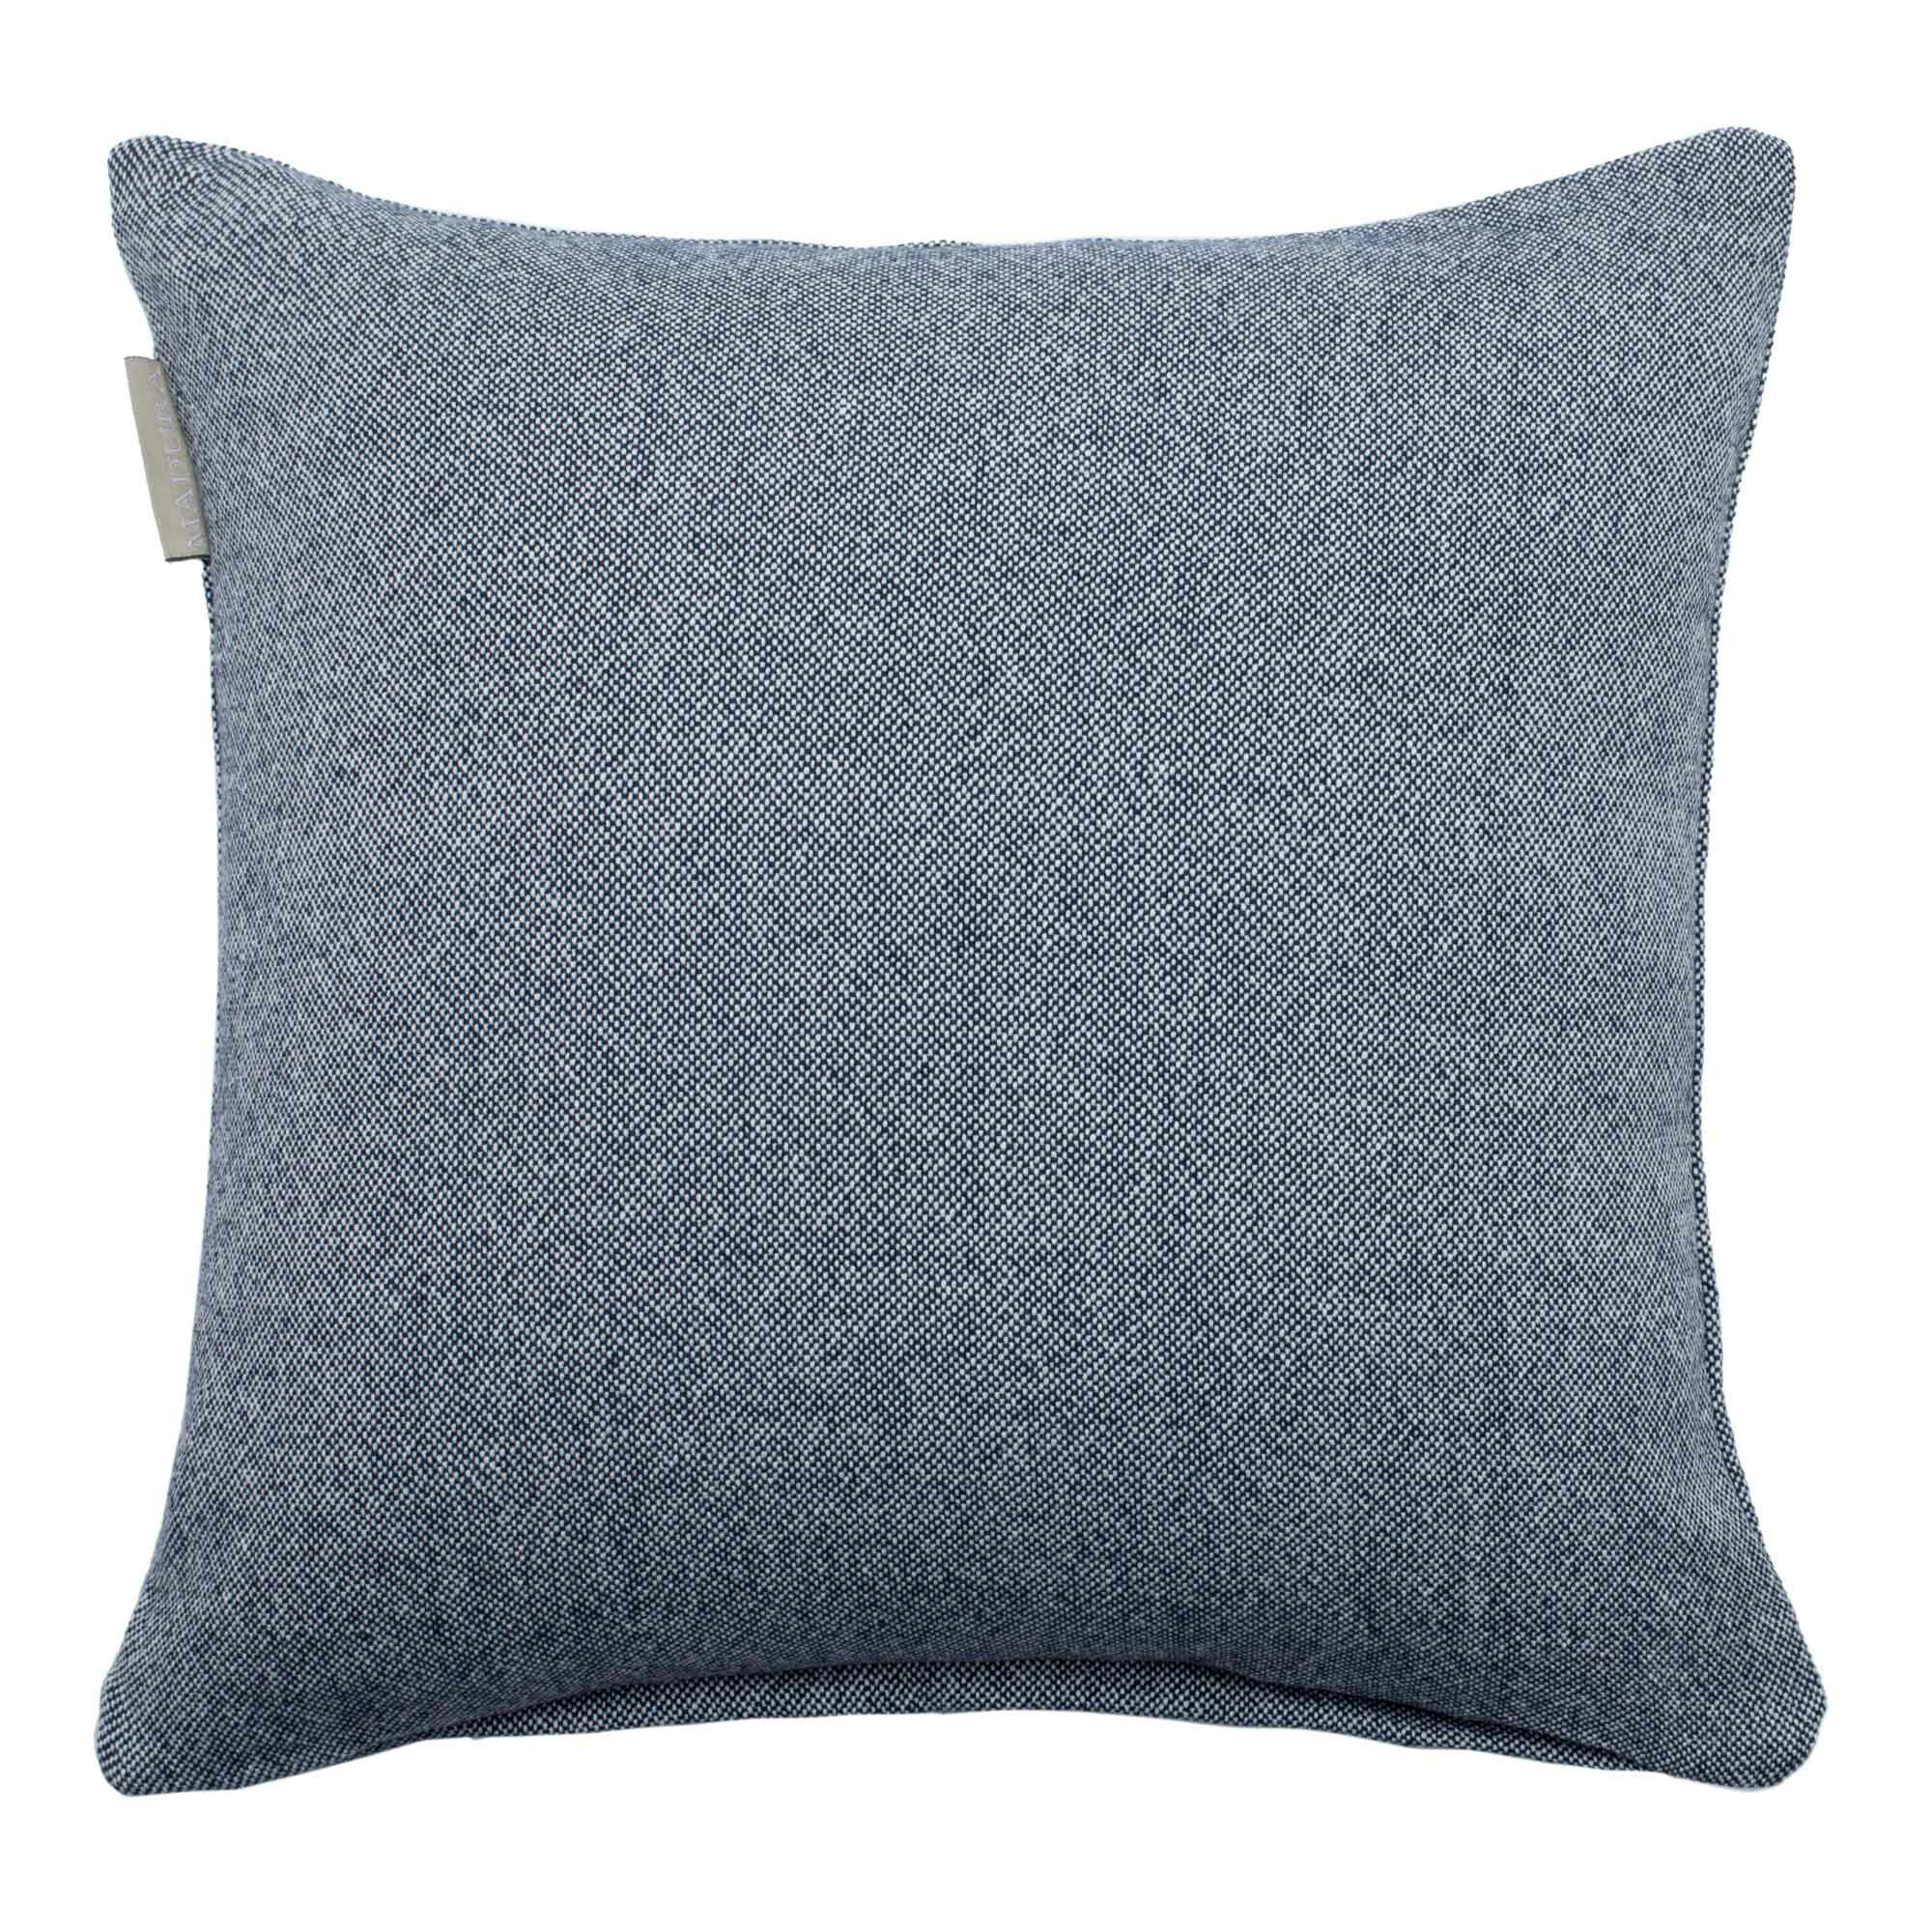 Chambray Cotton Pillow Cover Size: 23.4